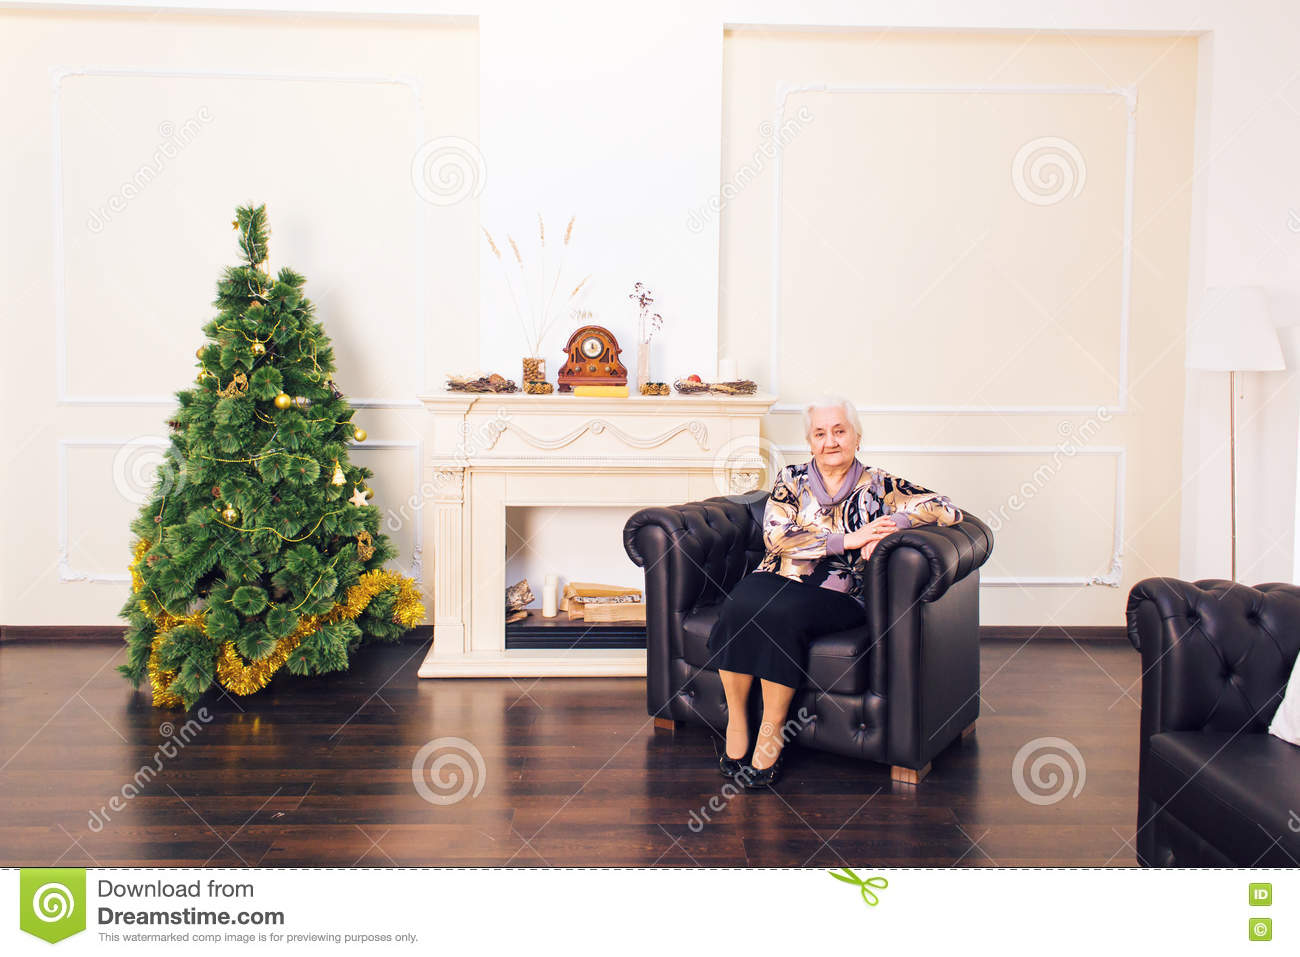 Smiling elderly woman relaxing in front of a decorated Christmas tree in her living room